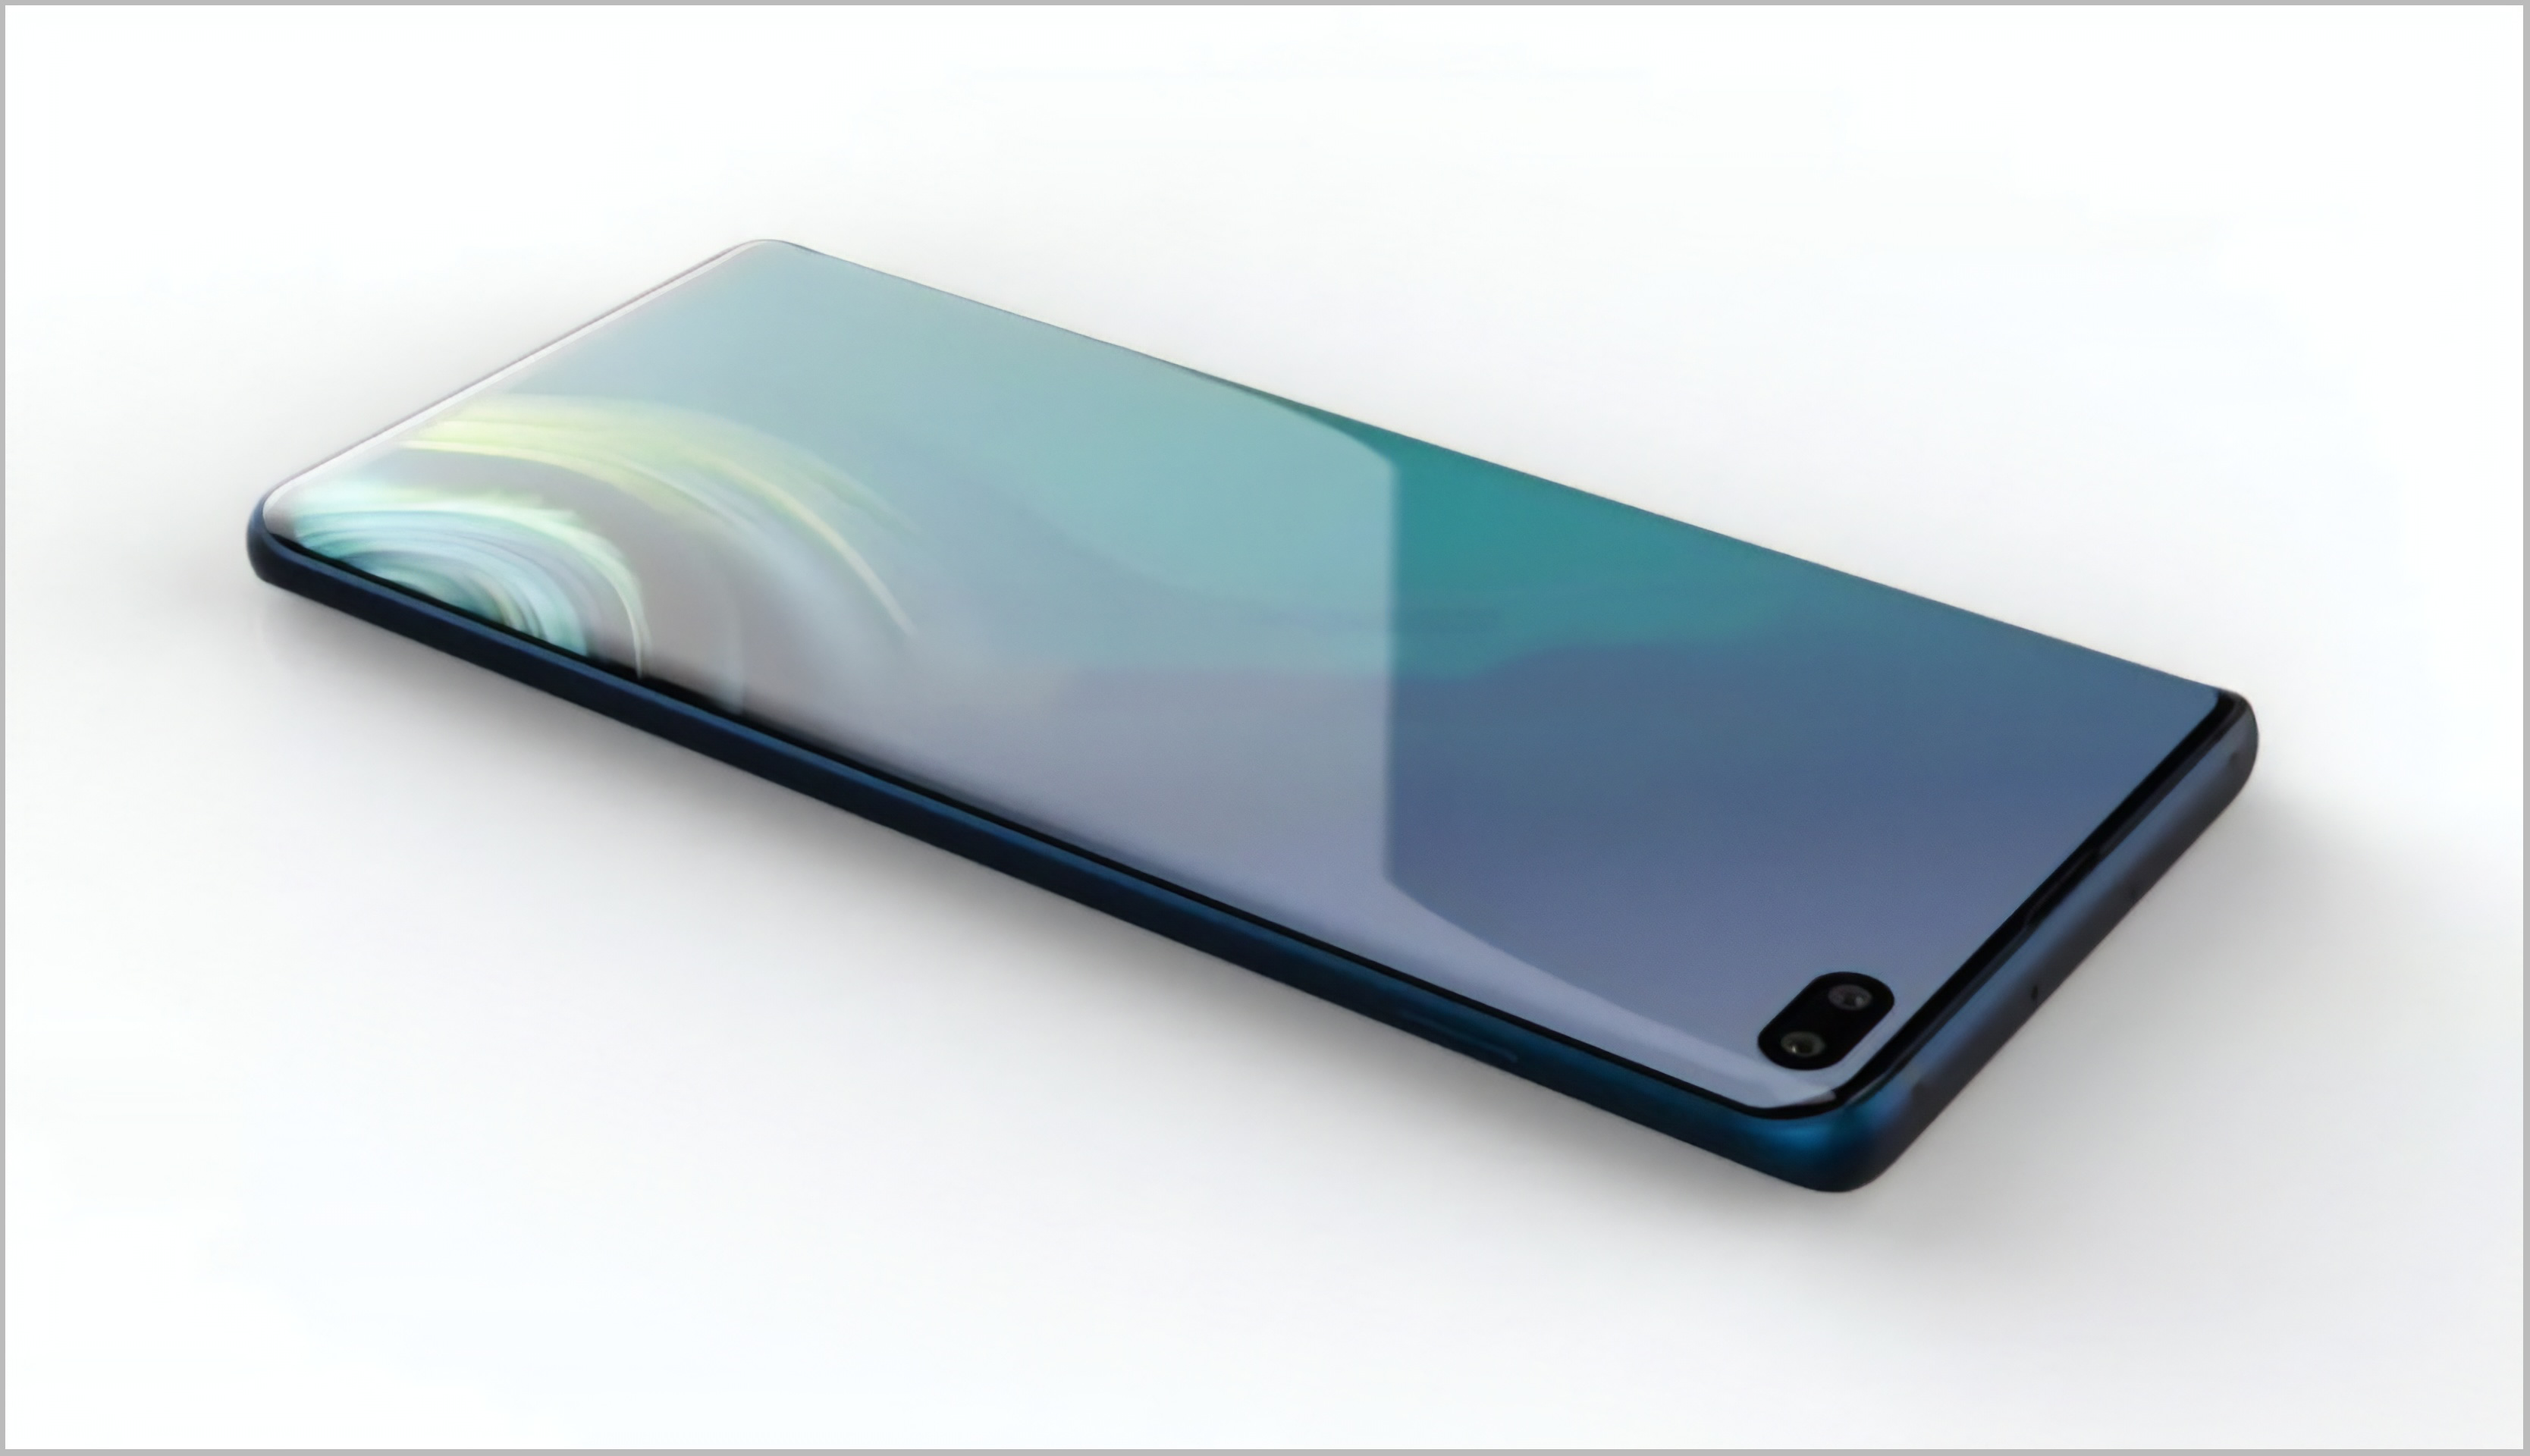 Massive Samsung Galaxy S10 leak details storage size, price and release date